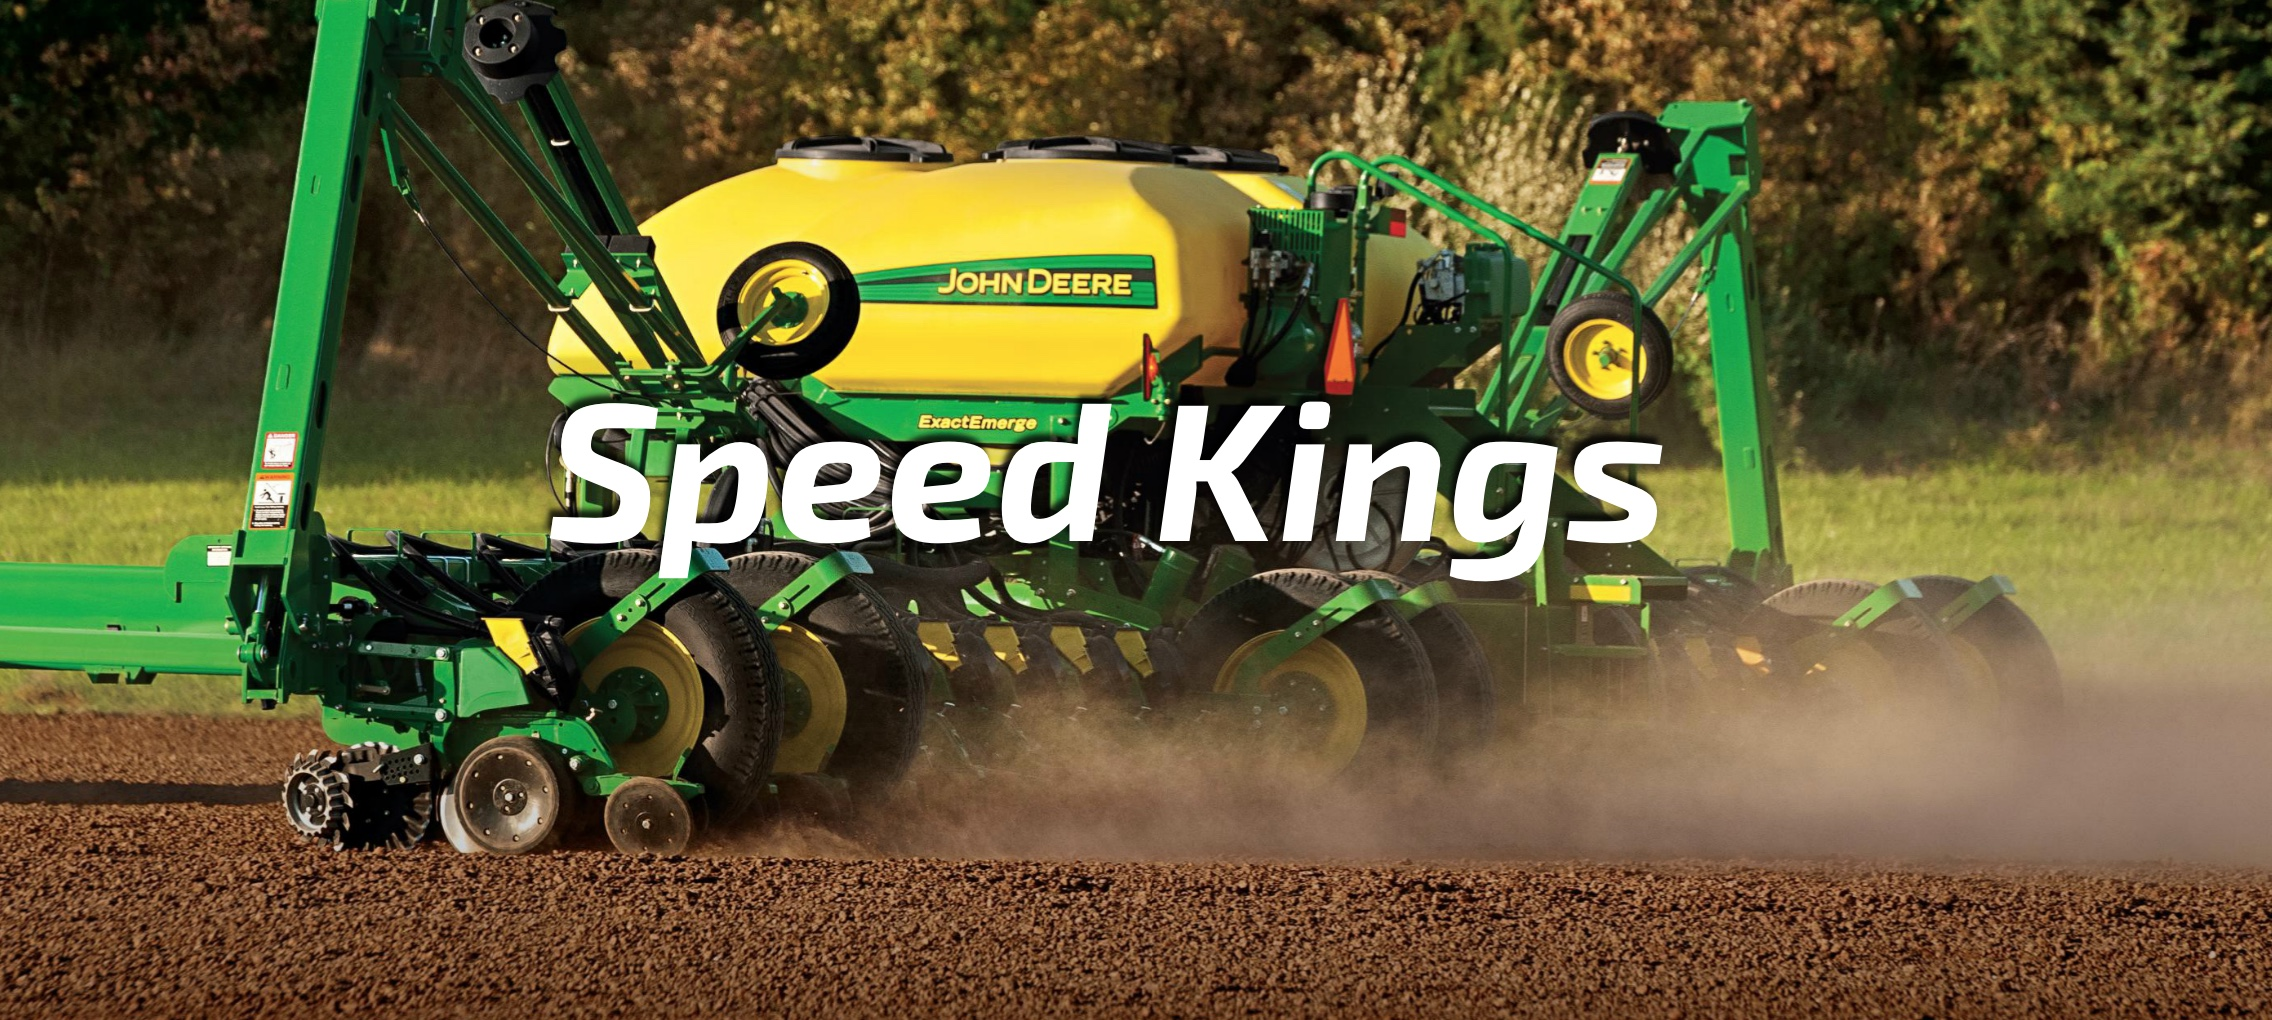 John Deere's high-speed ExactEmerge planter.